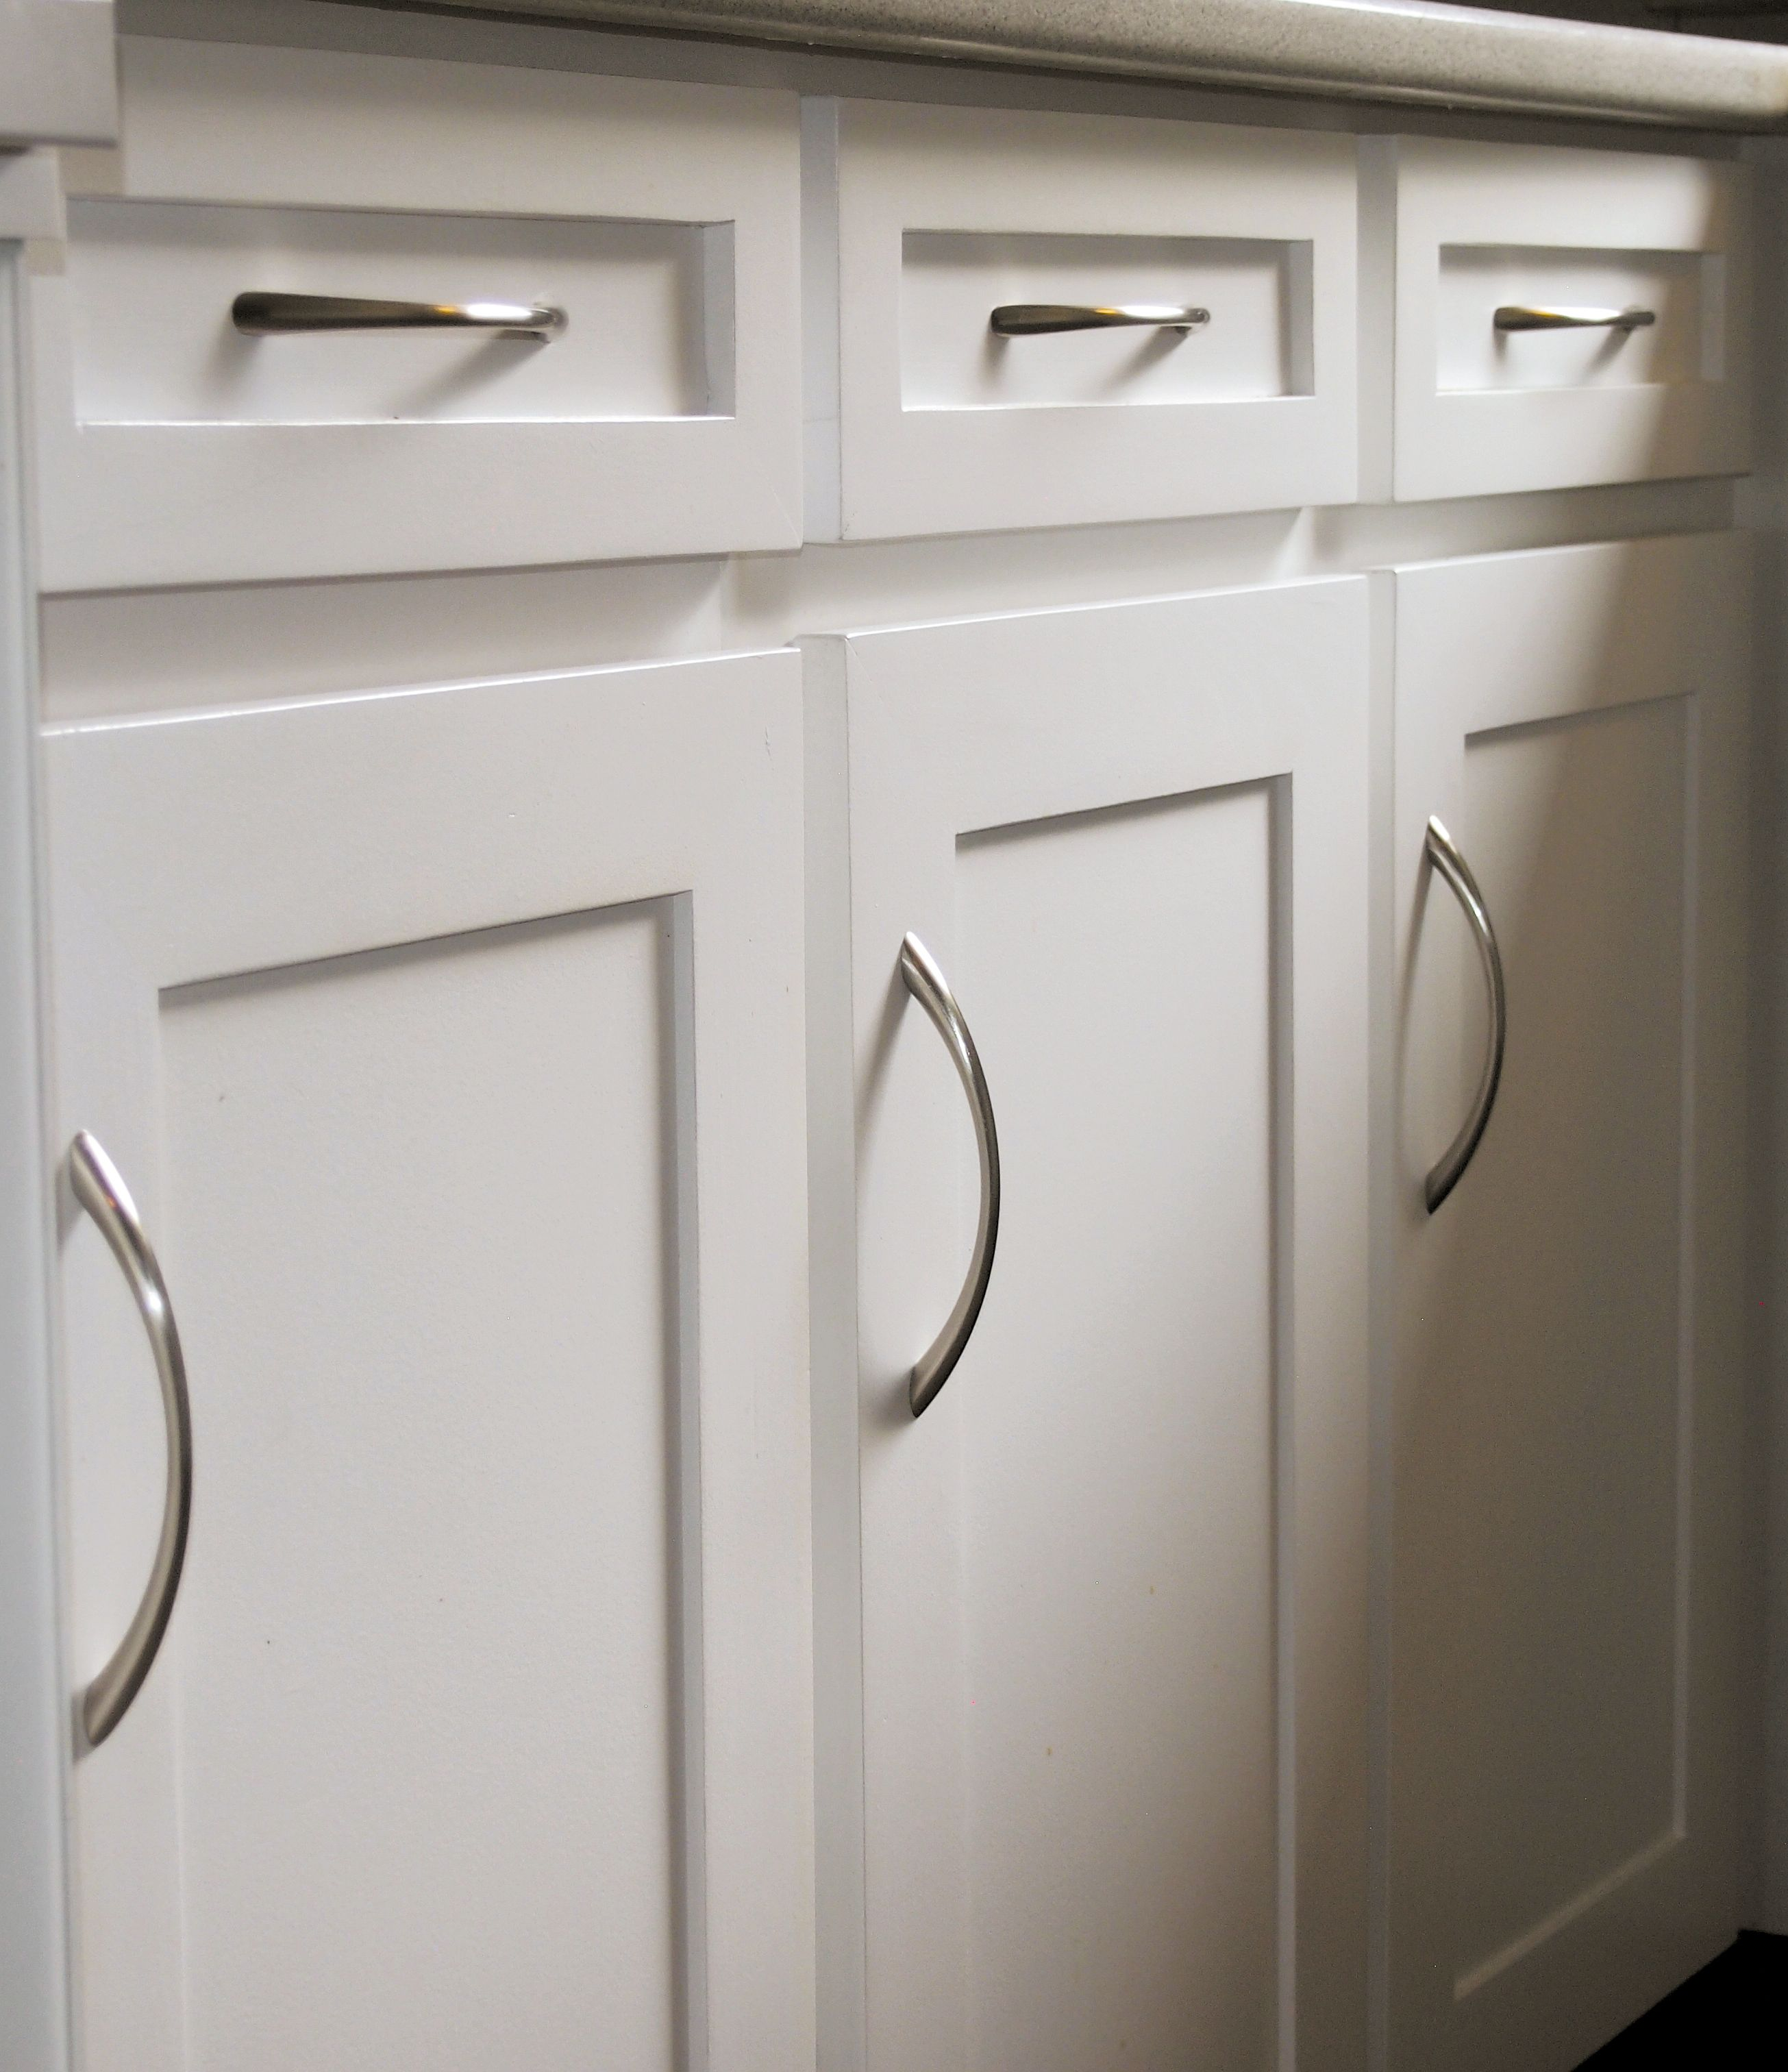 Kitchen Cabinet Door Painting: Clean, Simple Kitchen Cabinet Doors And Drawer Fronts With